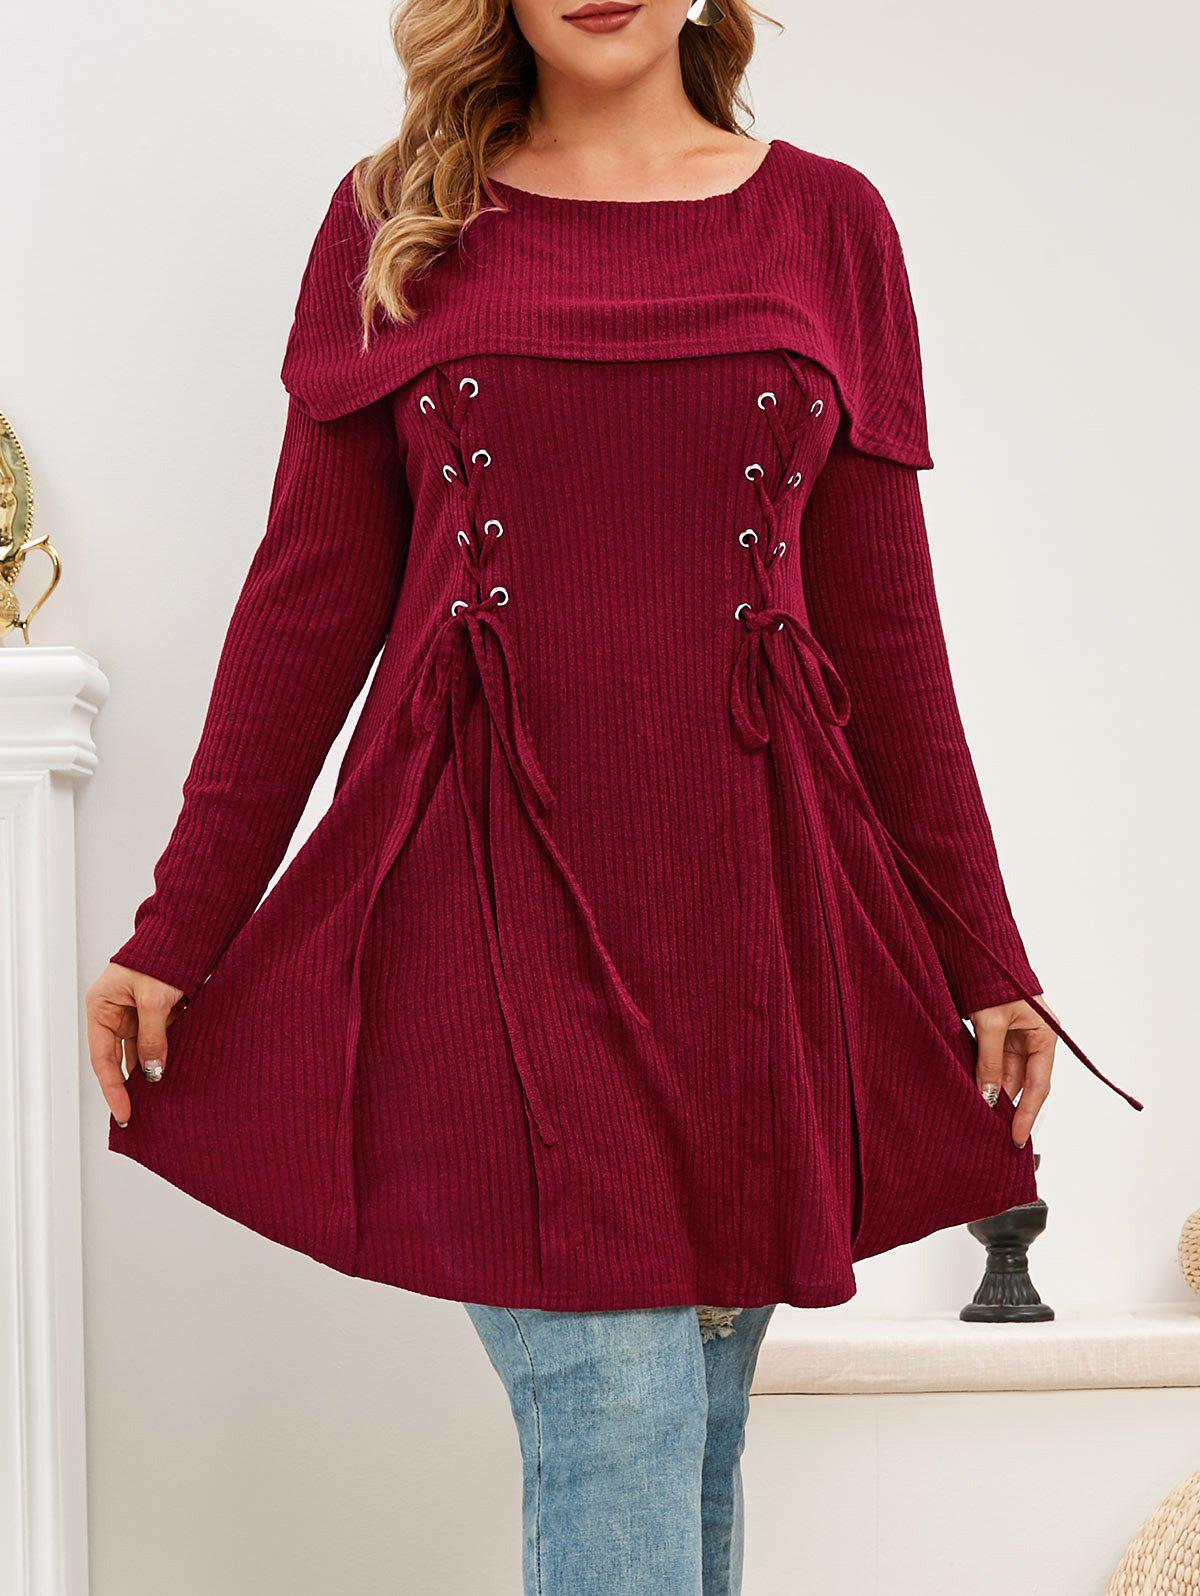 Plus Size Lace Up Foldover Knitwear - DEEP RED 5X